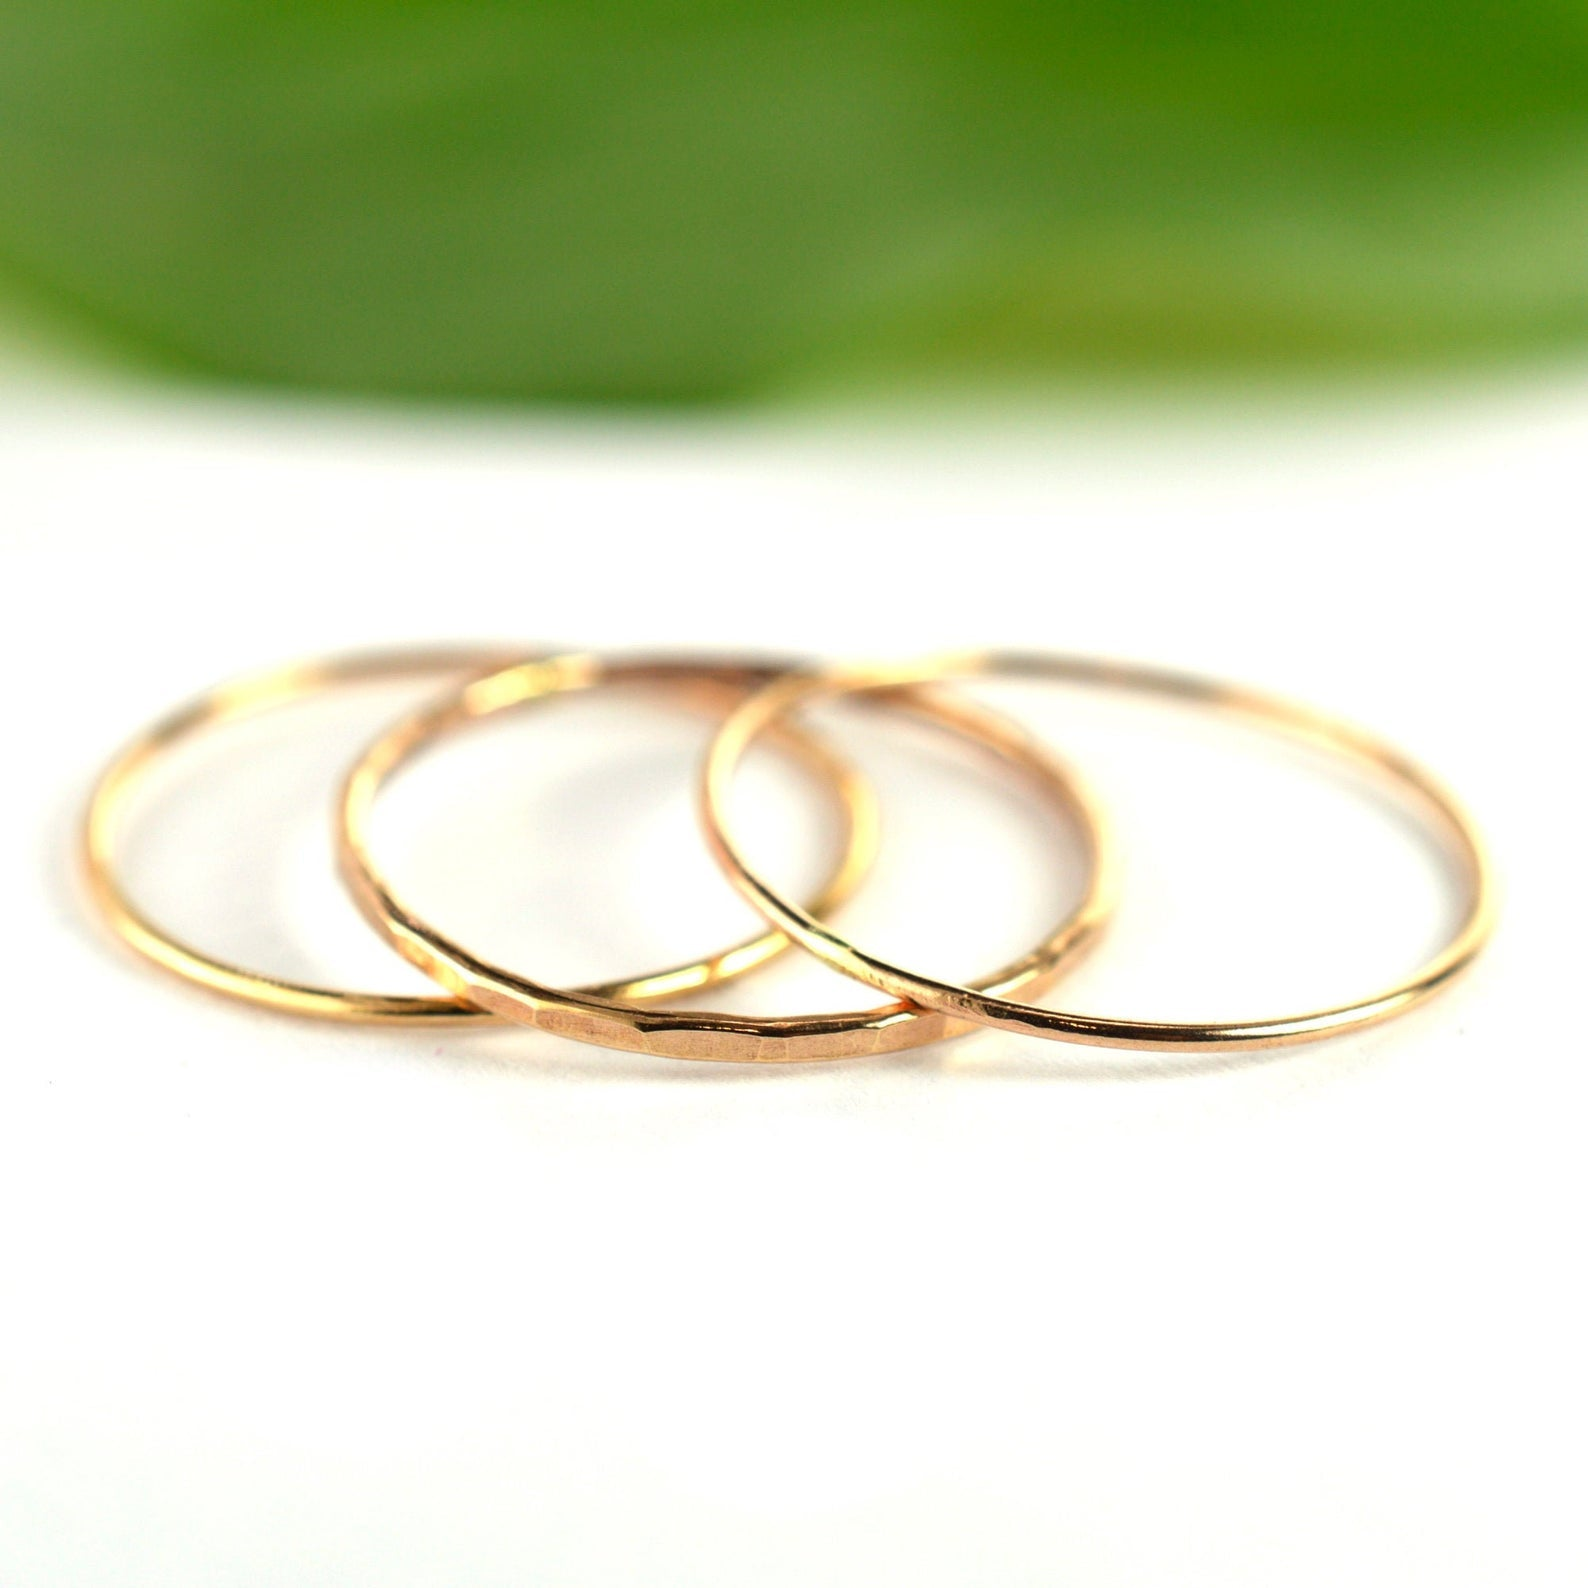 Size 8 / Rose Gold Stackable Ring Set of 3